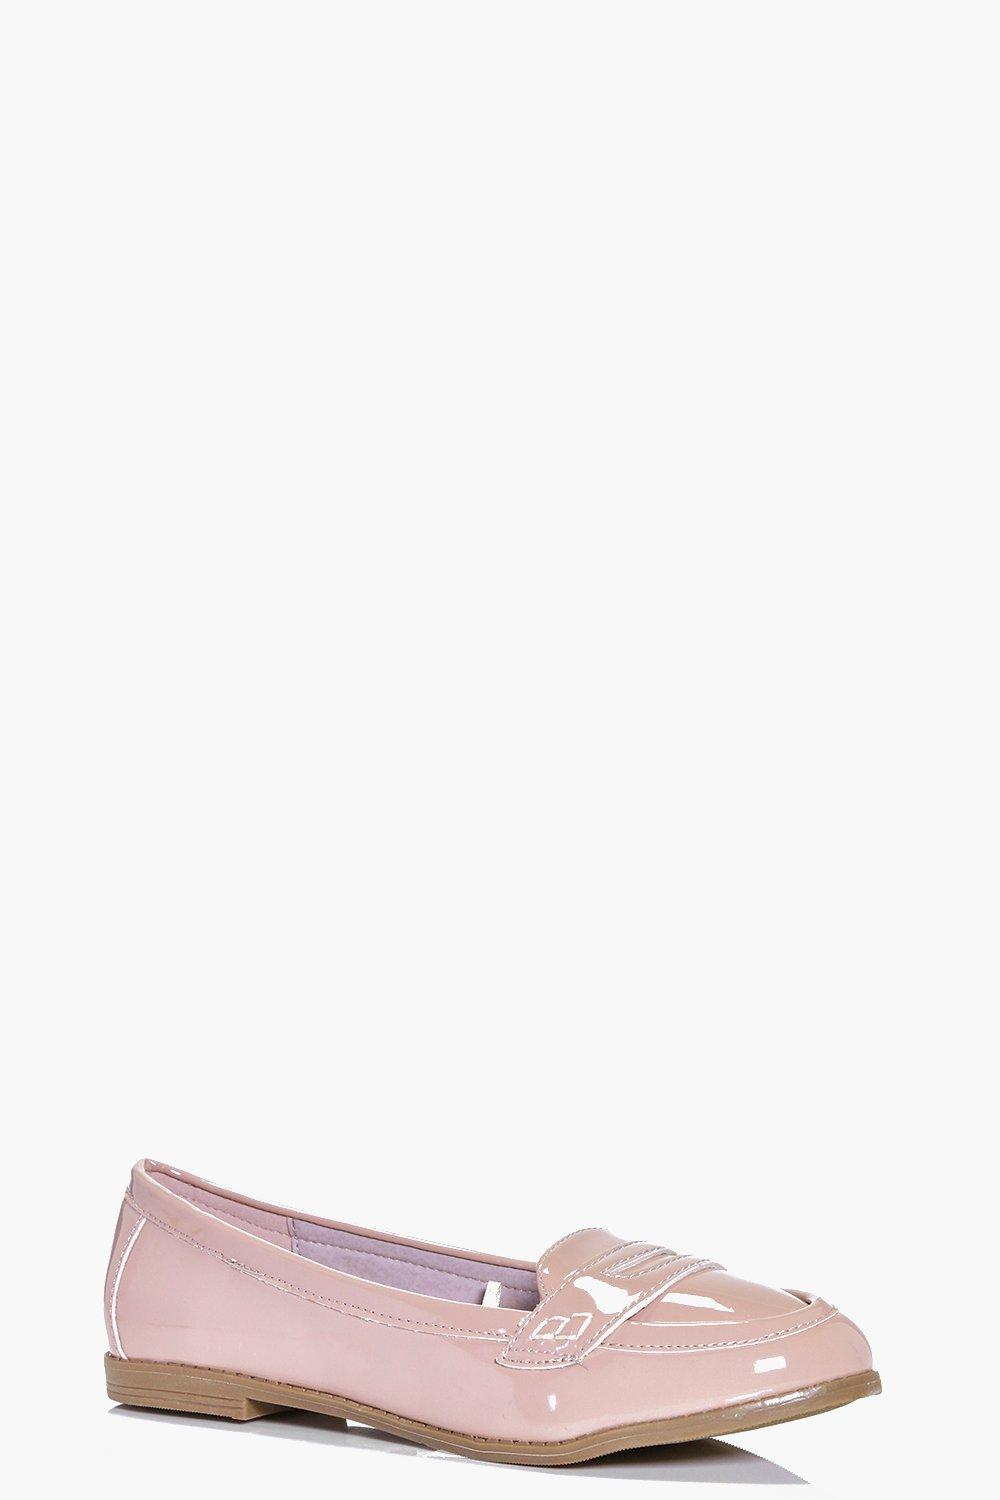 Millie Patent Loafer Flat